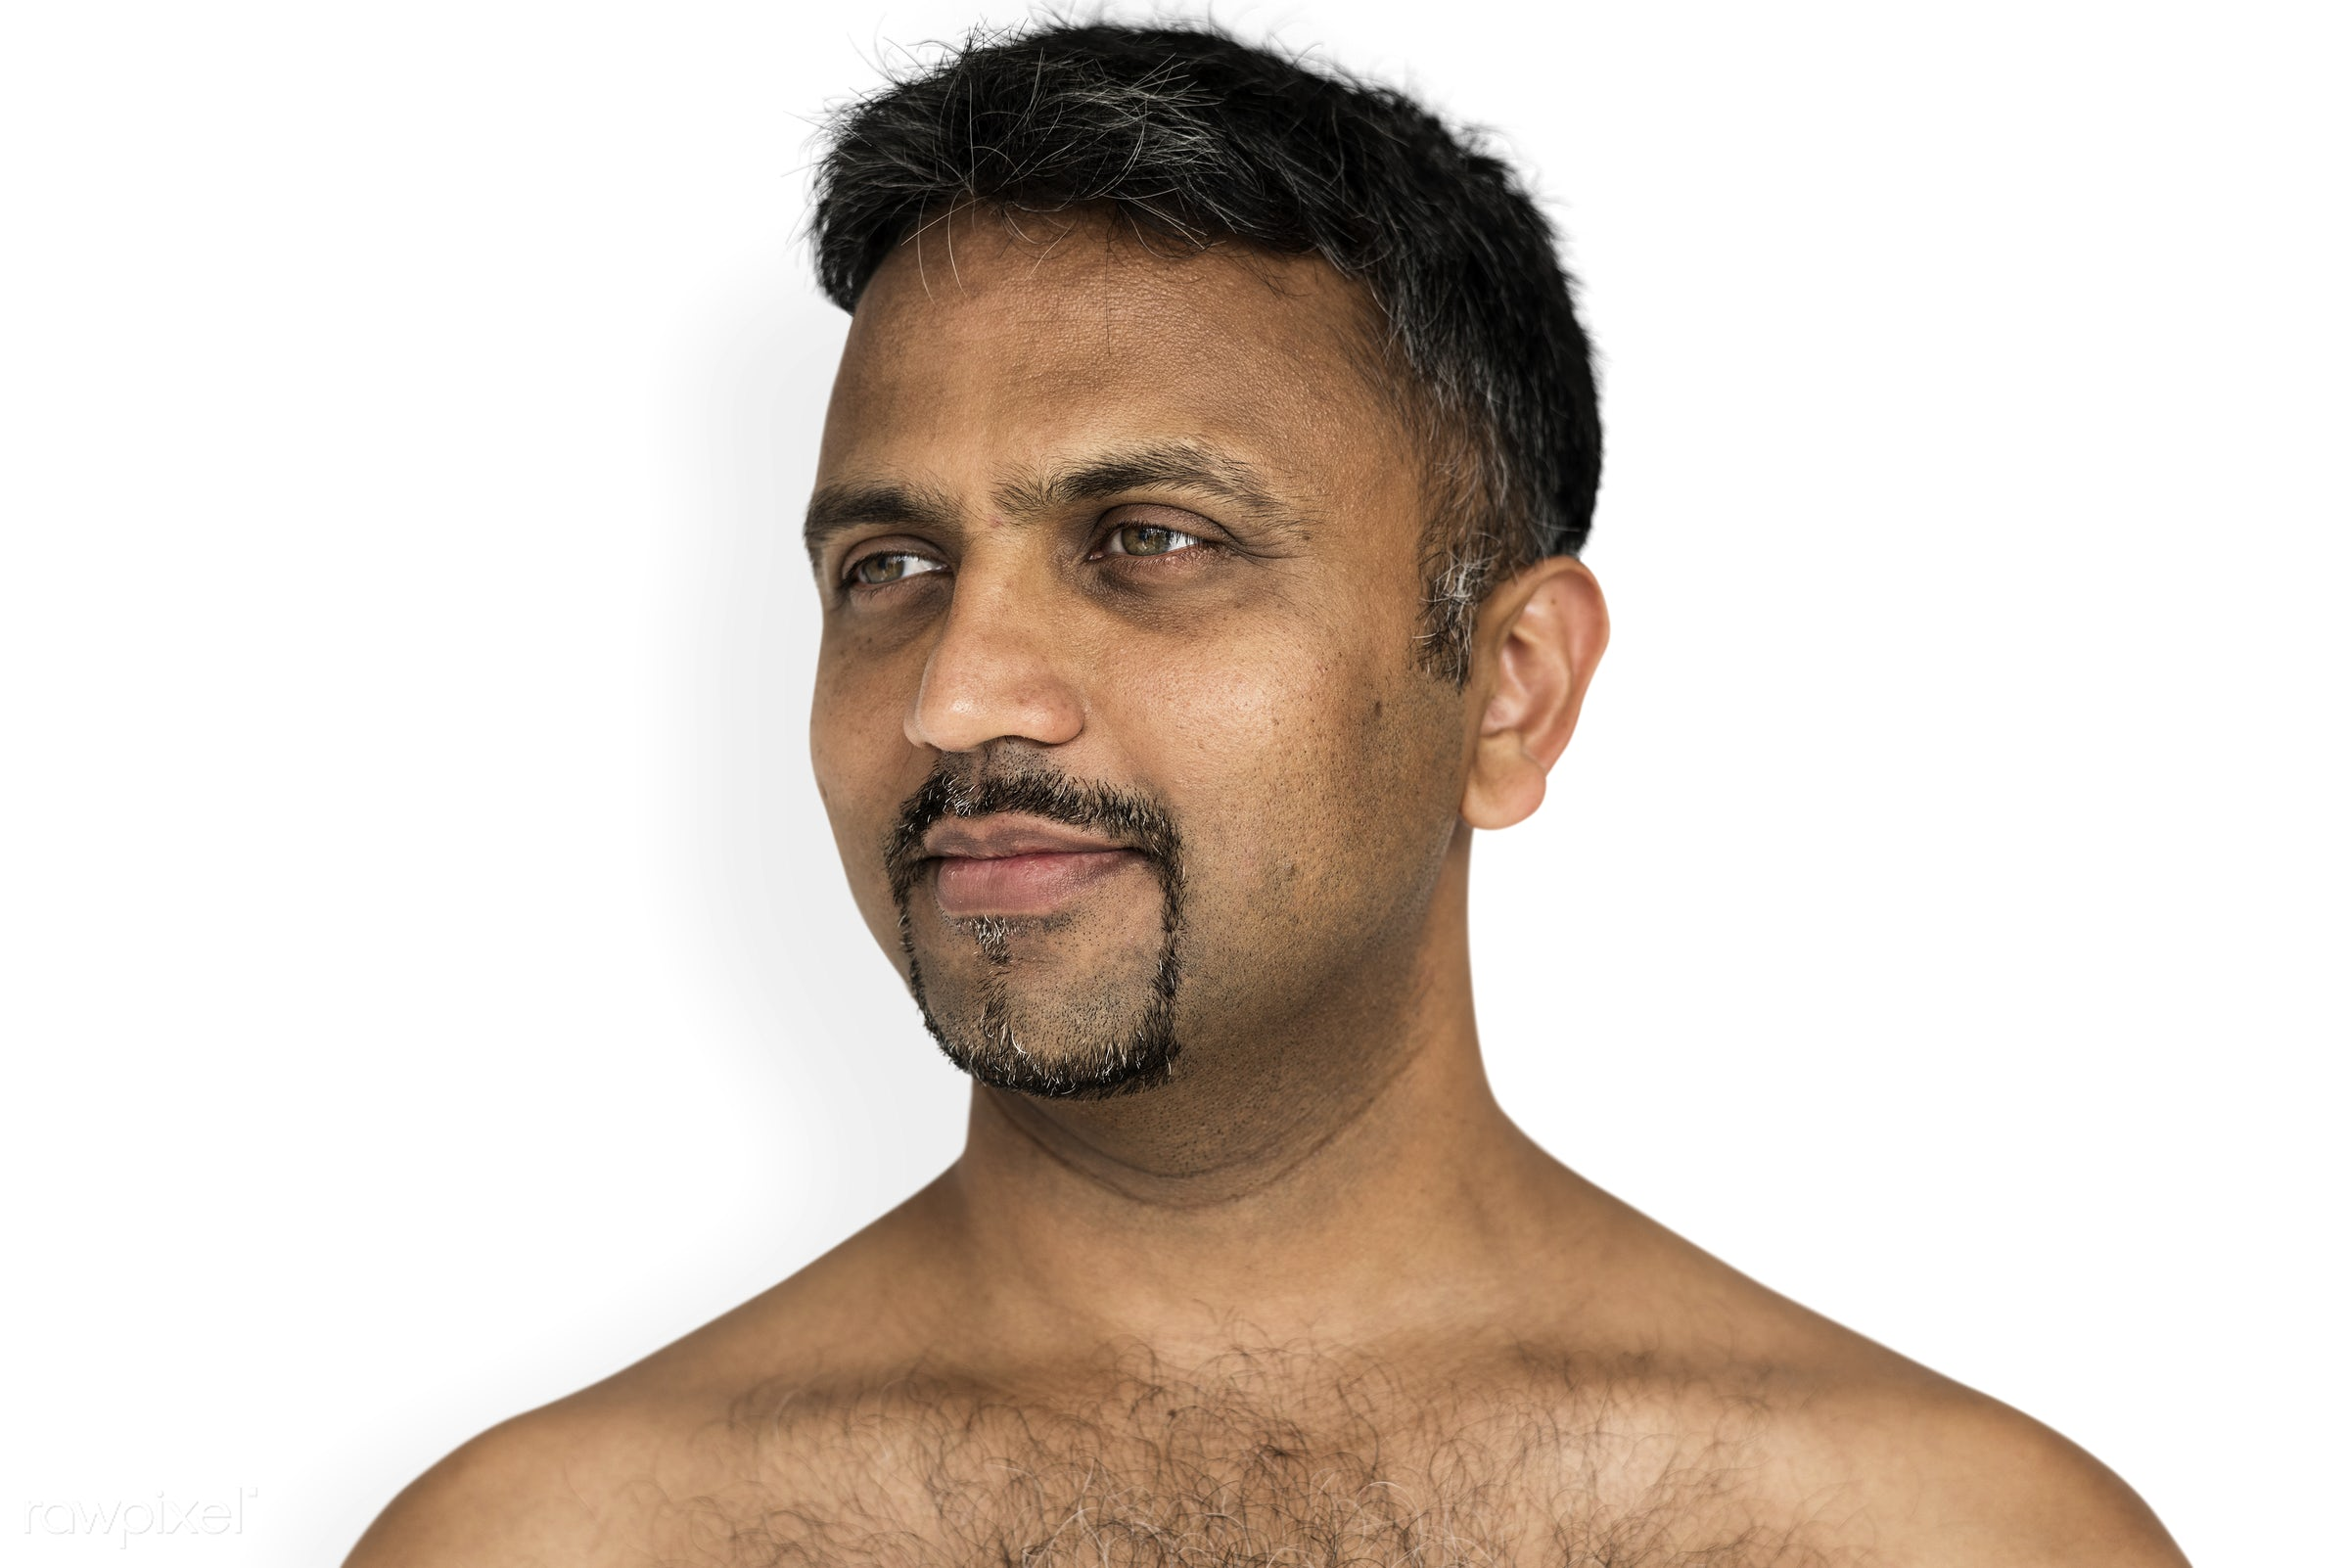 studio, face, person, isolated on white, joy, indian ethnicity, people, looking, bare chest, solo, happy, smile, cheerful,...